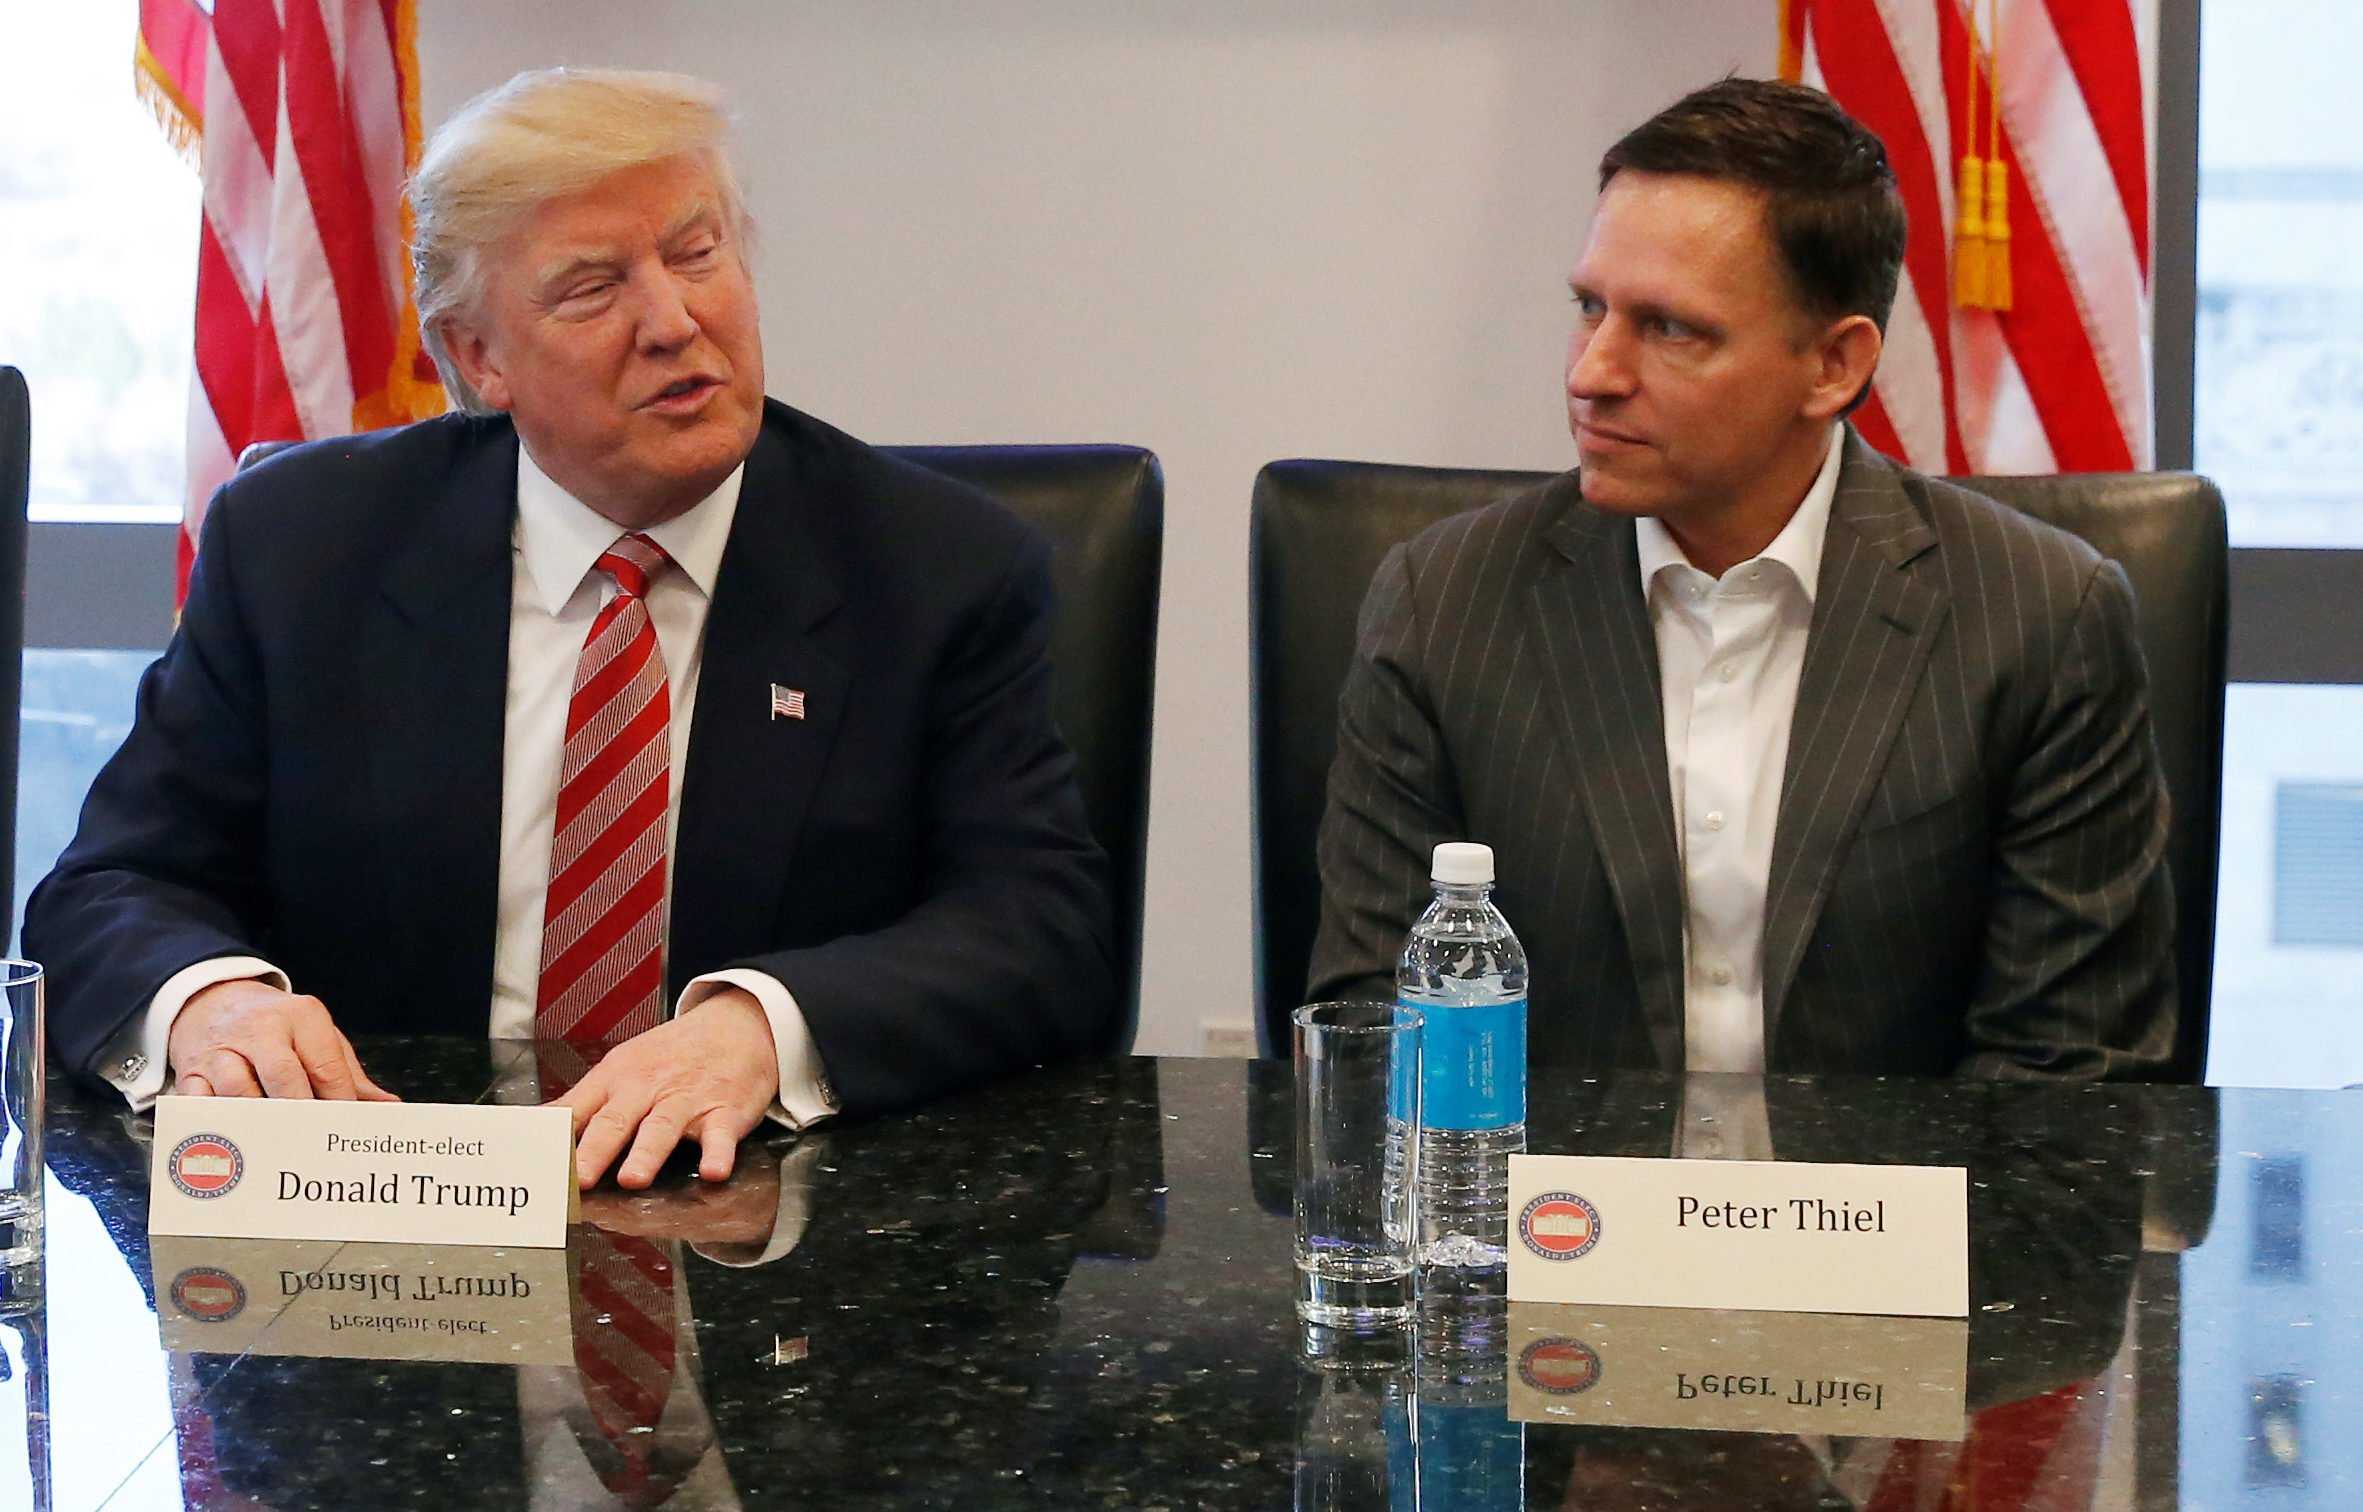 U.S. President-elect Donald Trump speaks while PayPal co-founder and Facebook board member Peter Thiel and Apple Inc CEO Tim Cook look on during a meeting with technology leaders at Trump Tower in New York U.S., December 14, 2016. REUTERS/Shannon Stapleton - RC1838328880